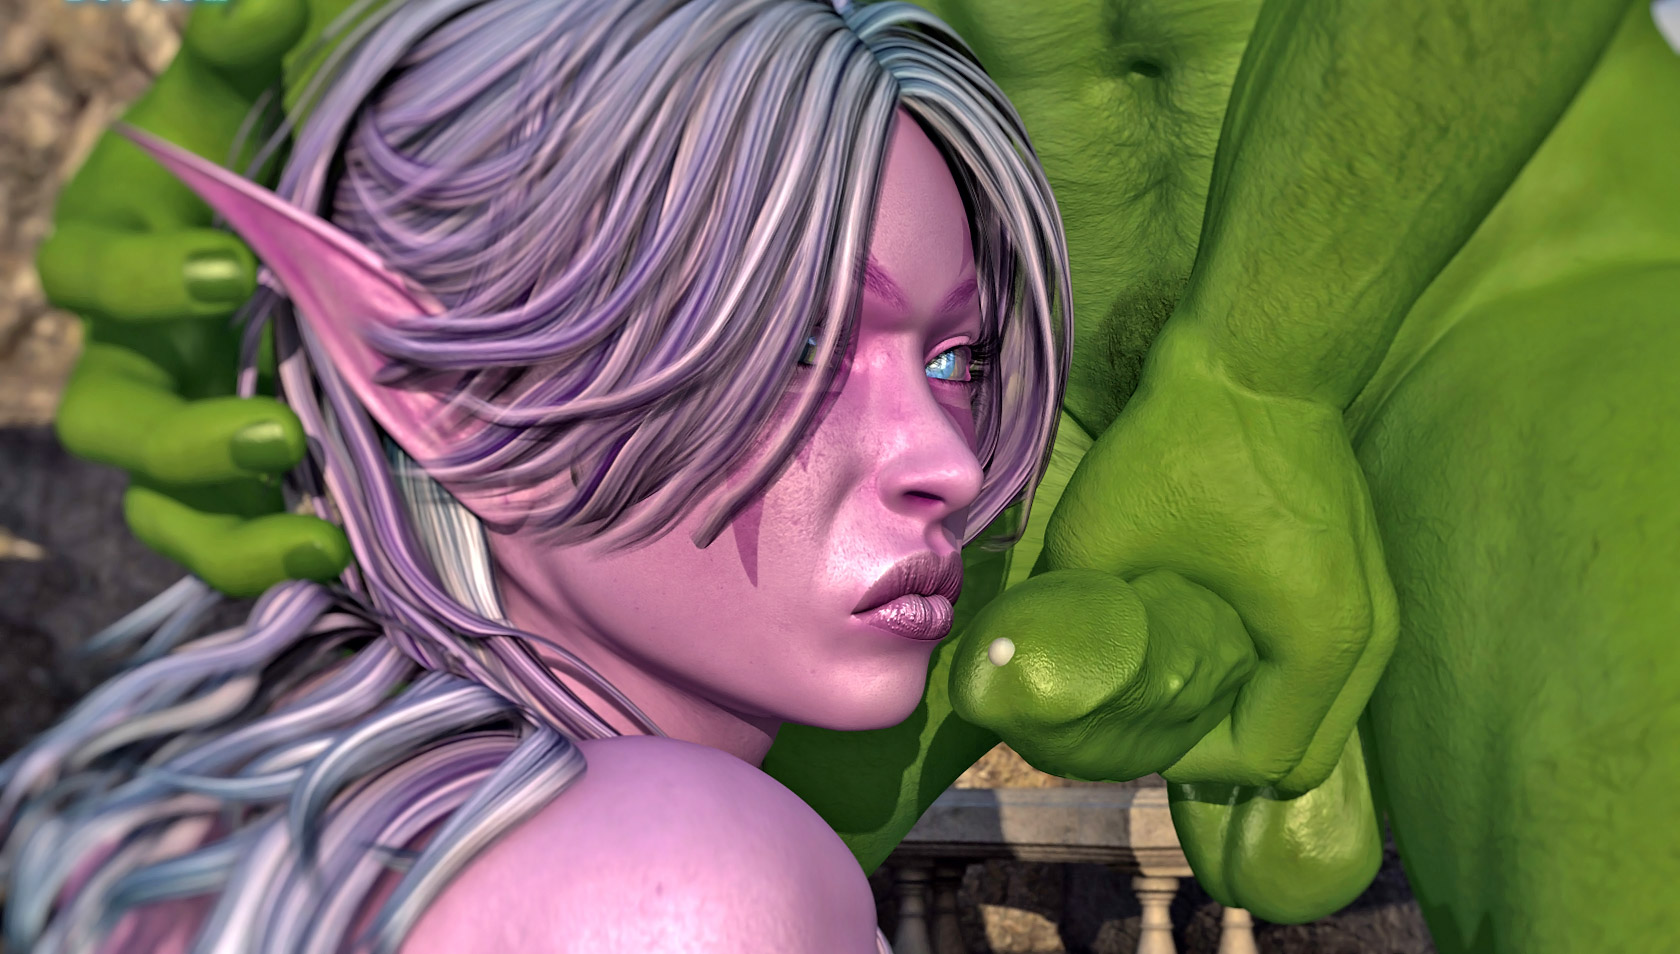 Busty nightelf porn photos